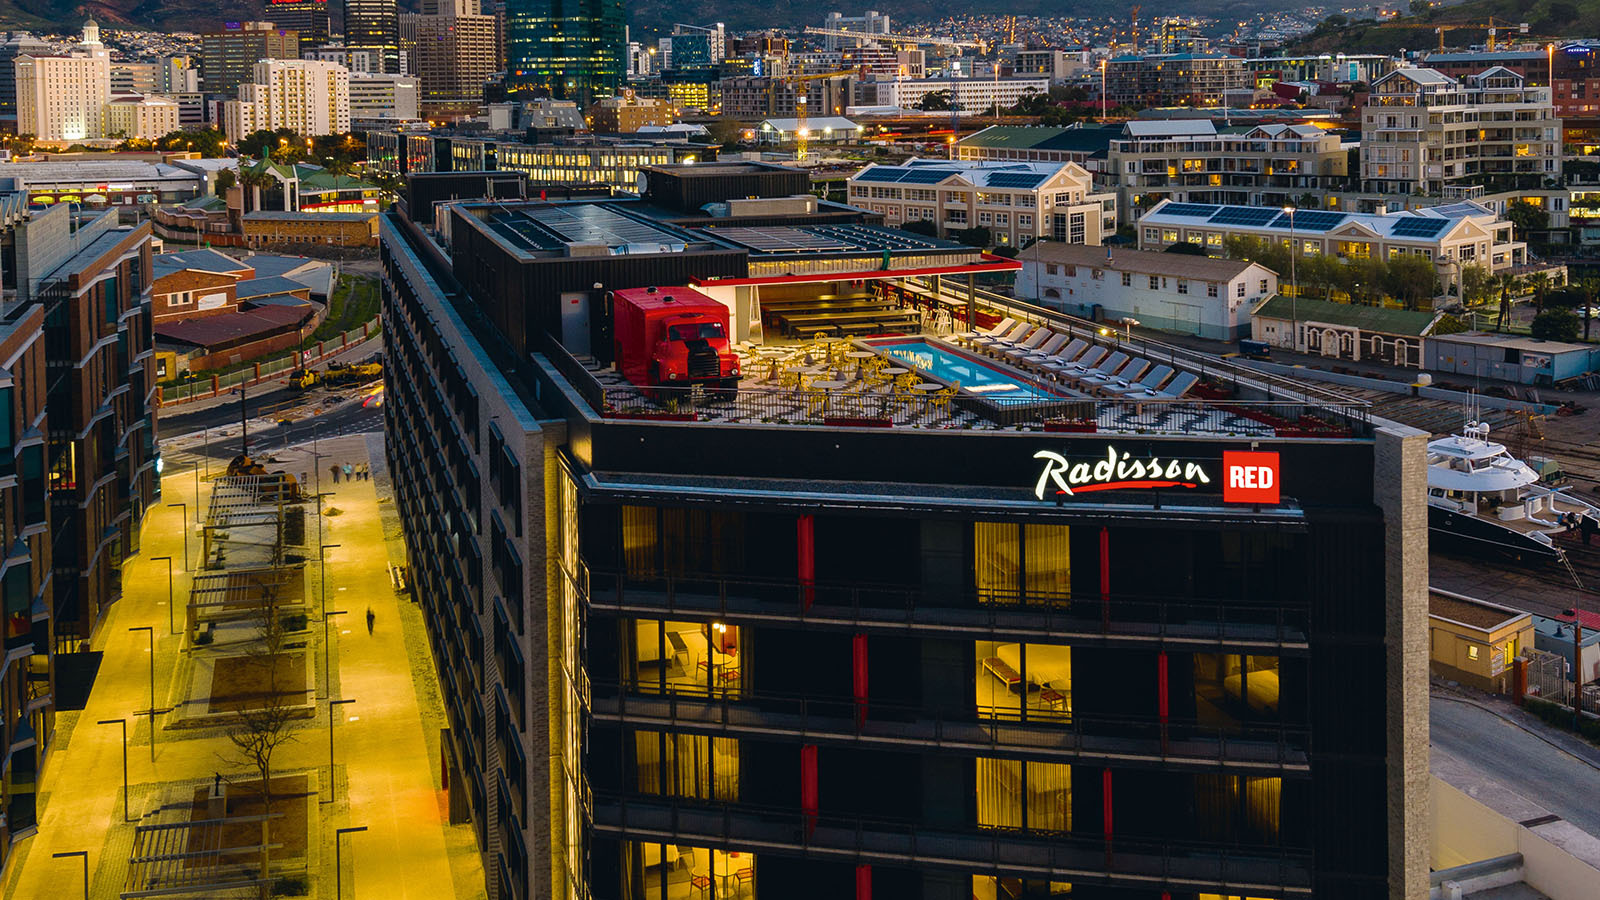 Radisson Red Case Study Image